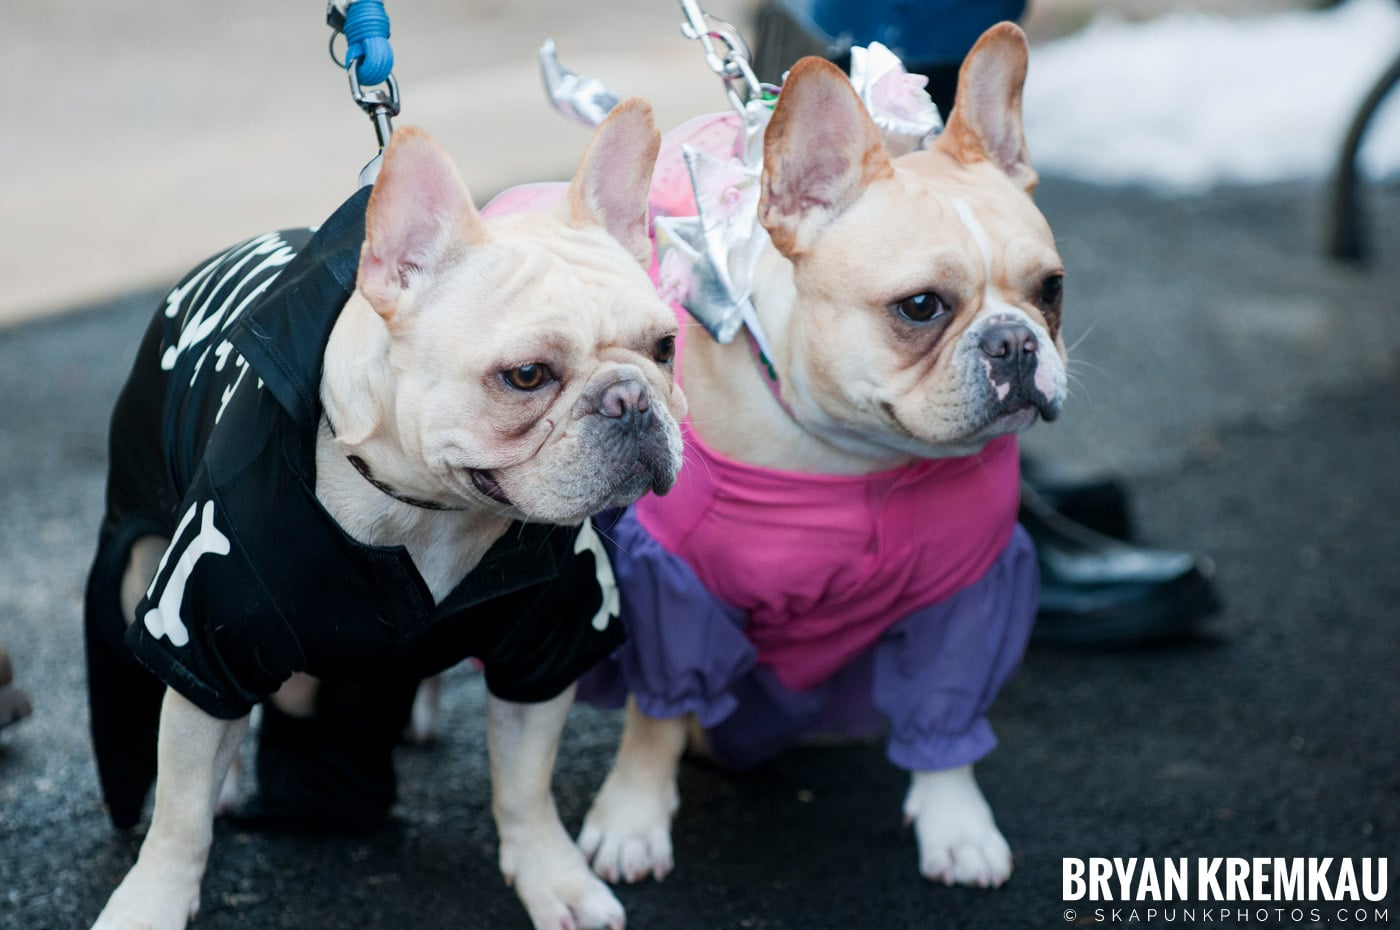 Paulus Hook Halloween Pet Parade 2011 @ Jersey City, NJ - 10.30.11 (51)